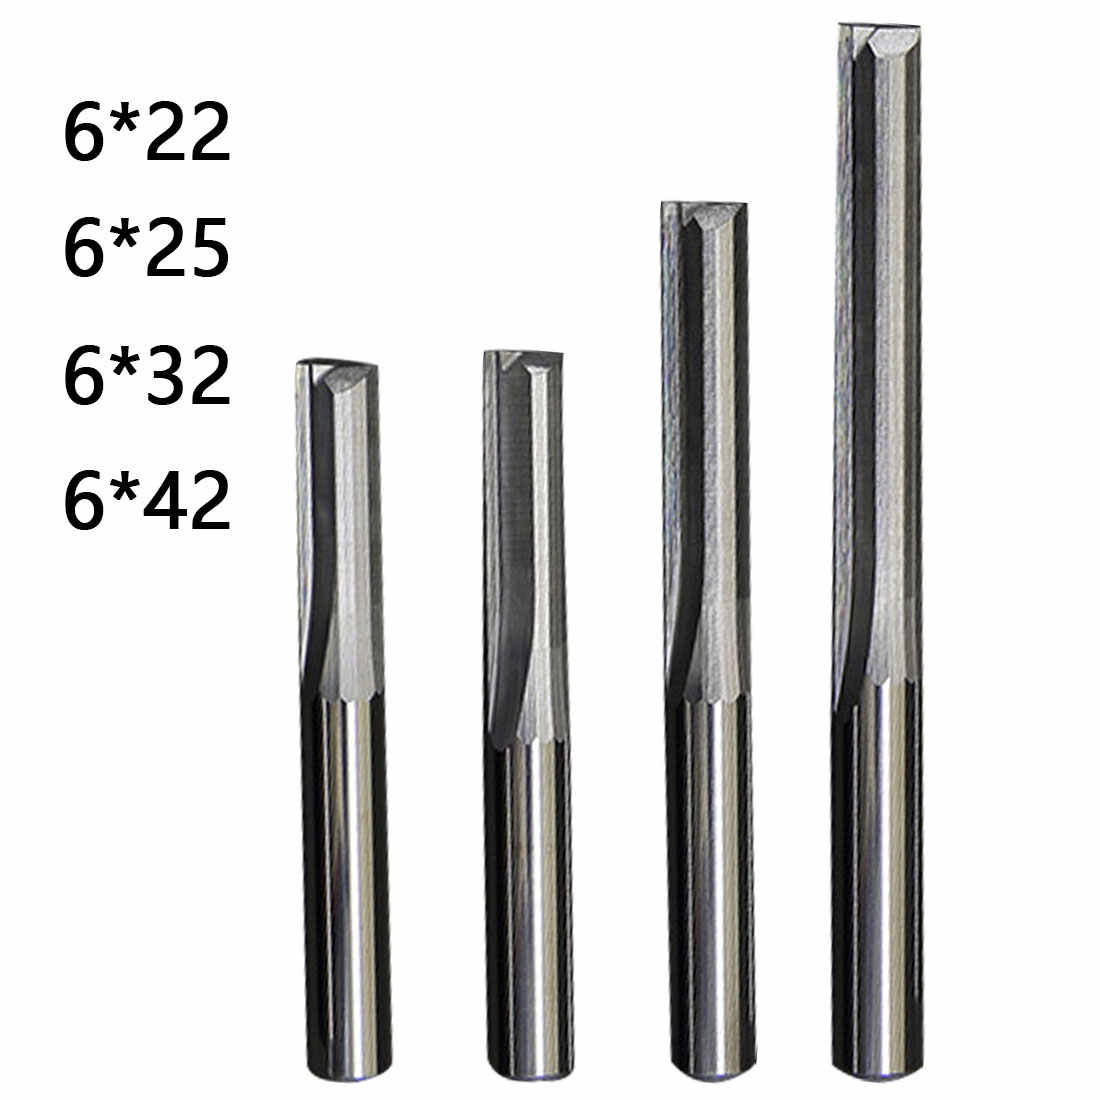 Milling Cutter 6mm/4mm Shank Two Flutes Straight Router Bits for Wood CNC Straight Engraving Cutters End Mill Tools